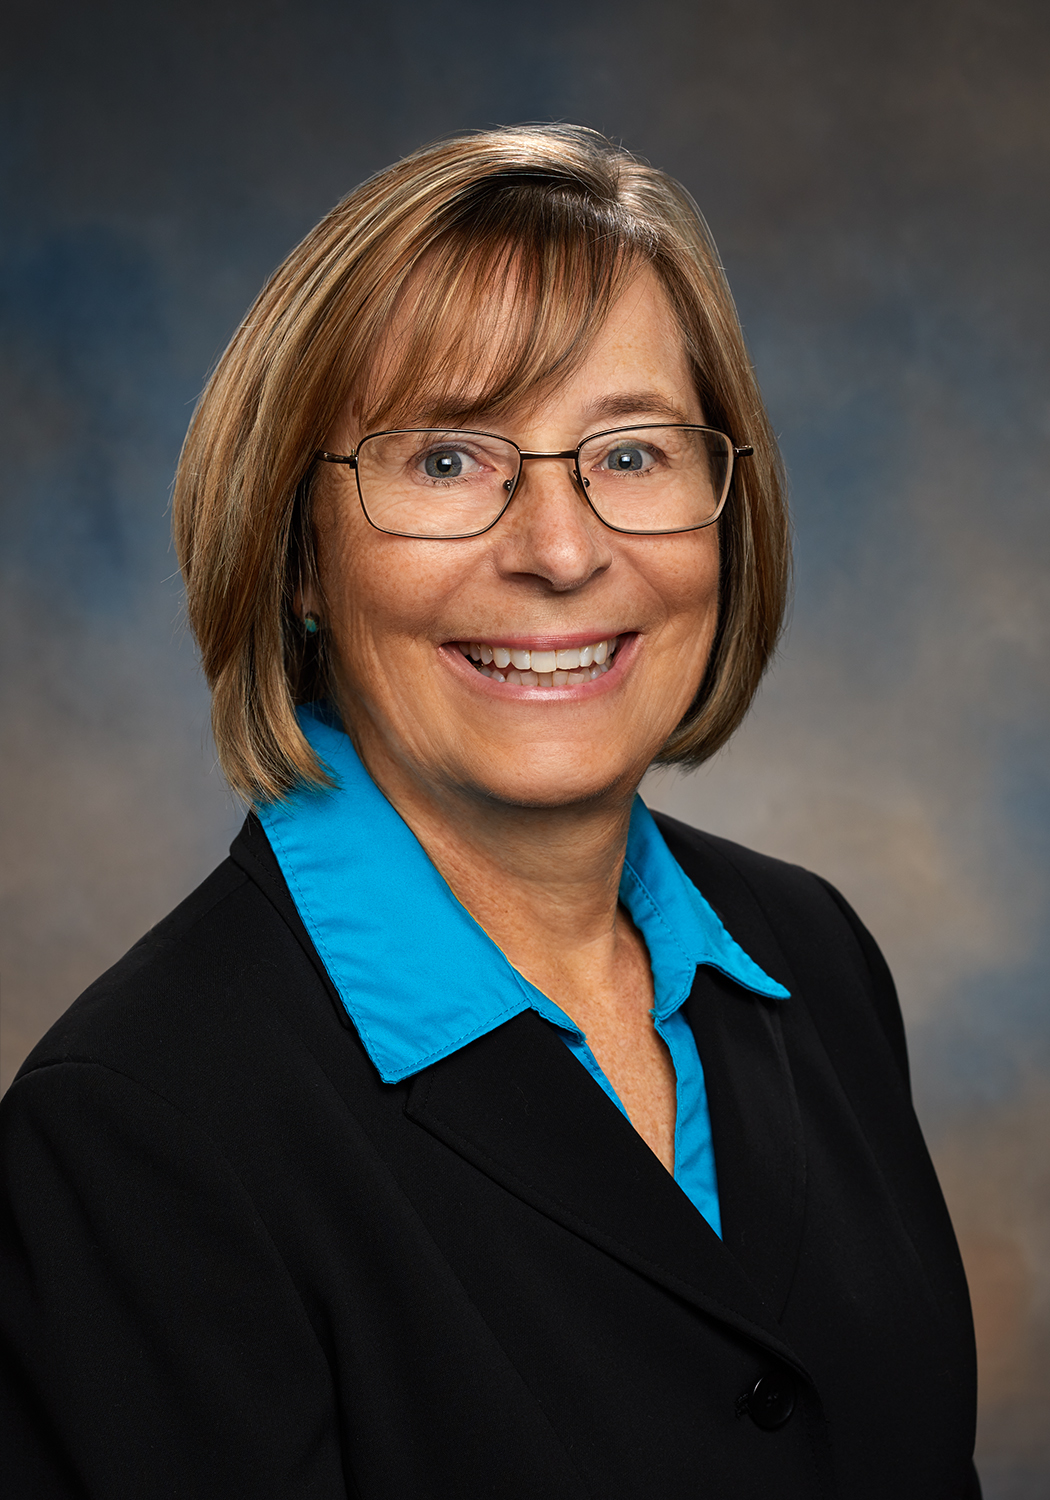 Nancy Gaffney, CPA, CVA